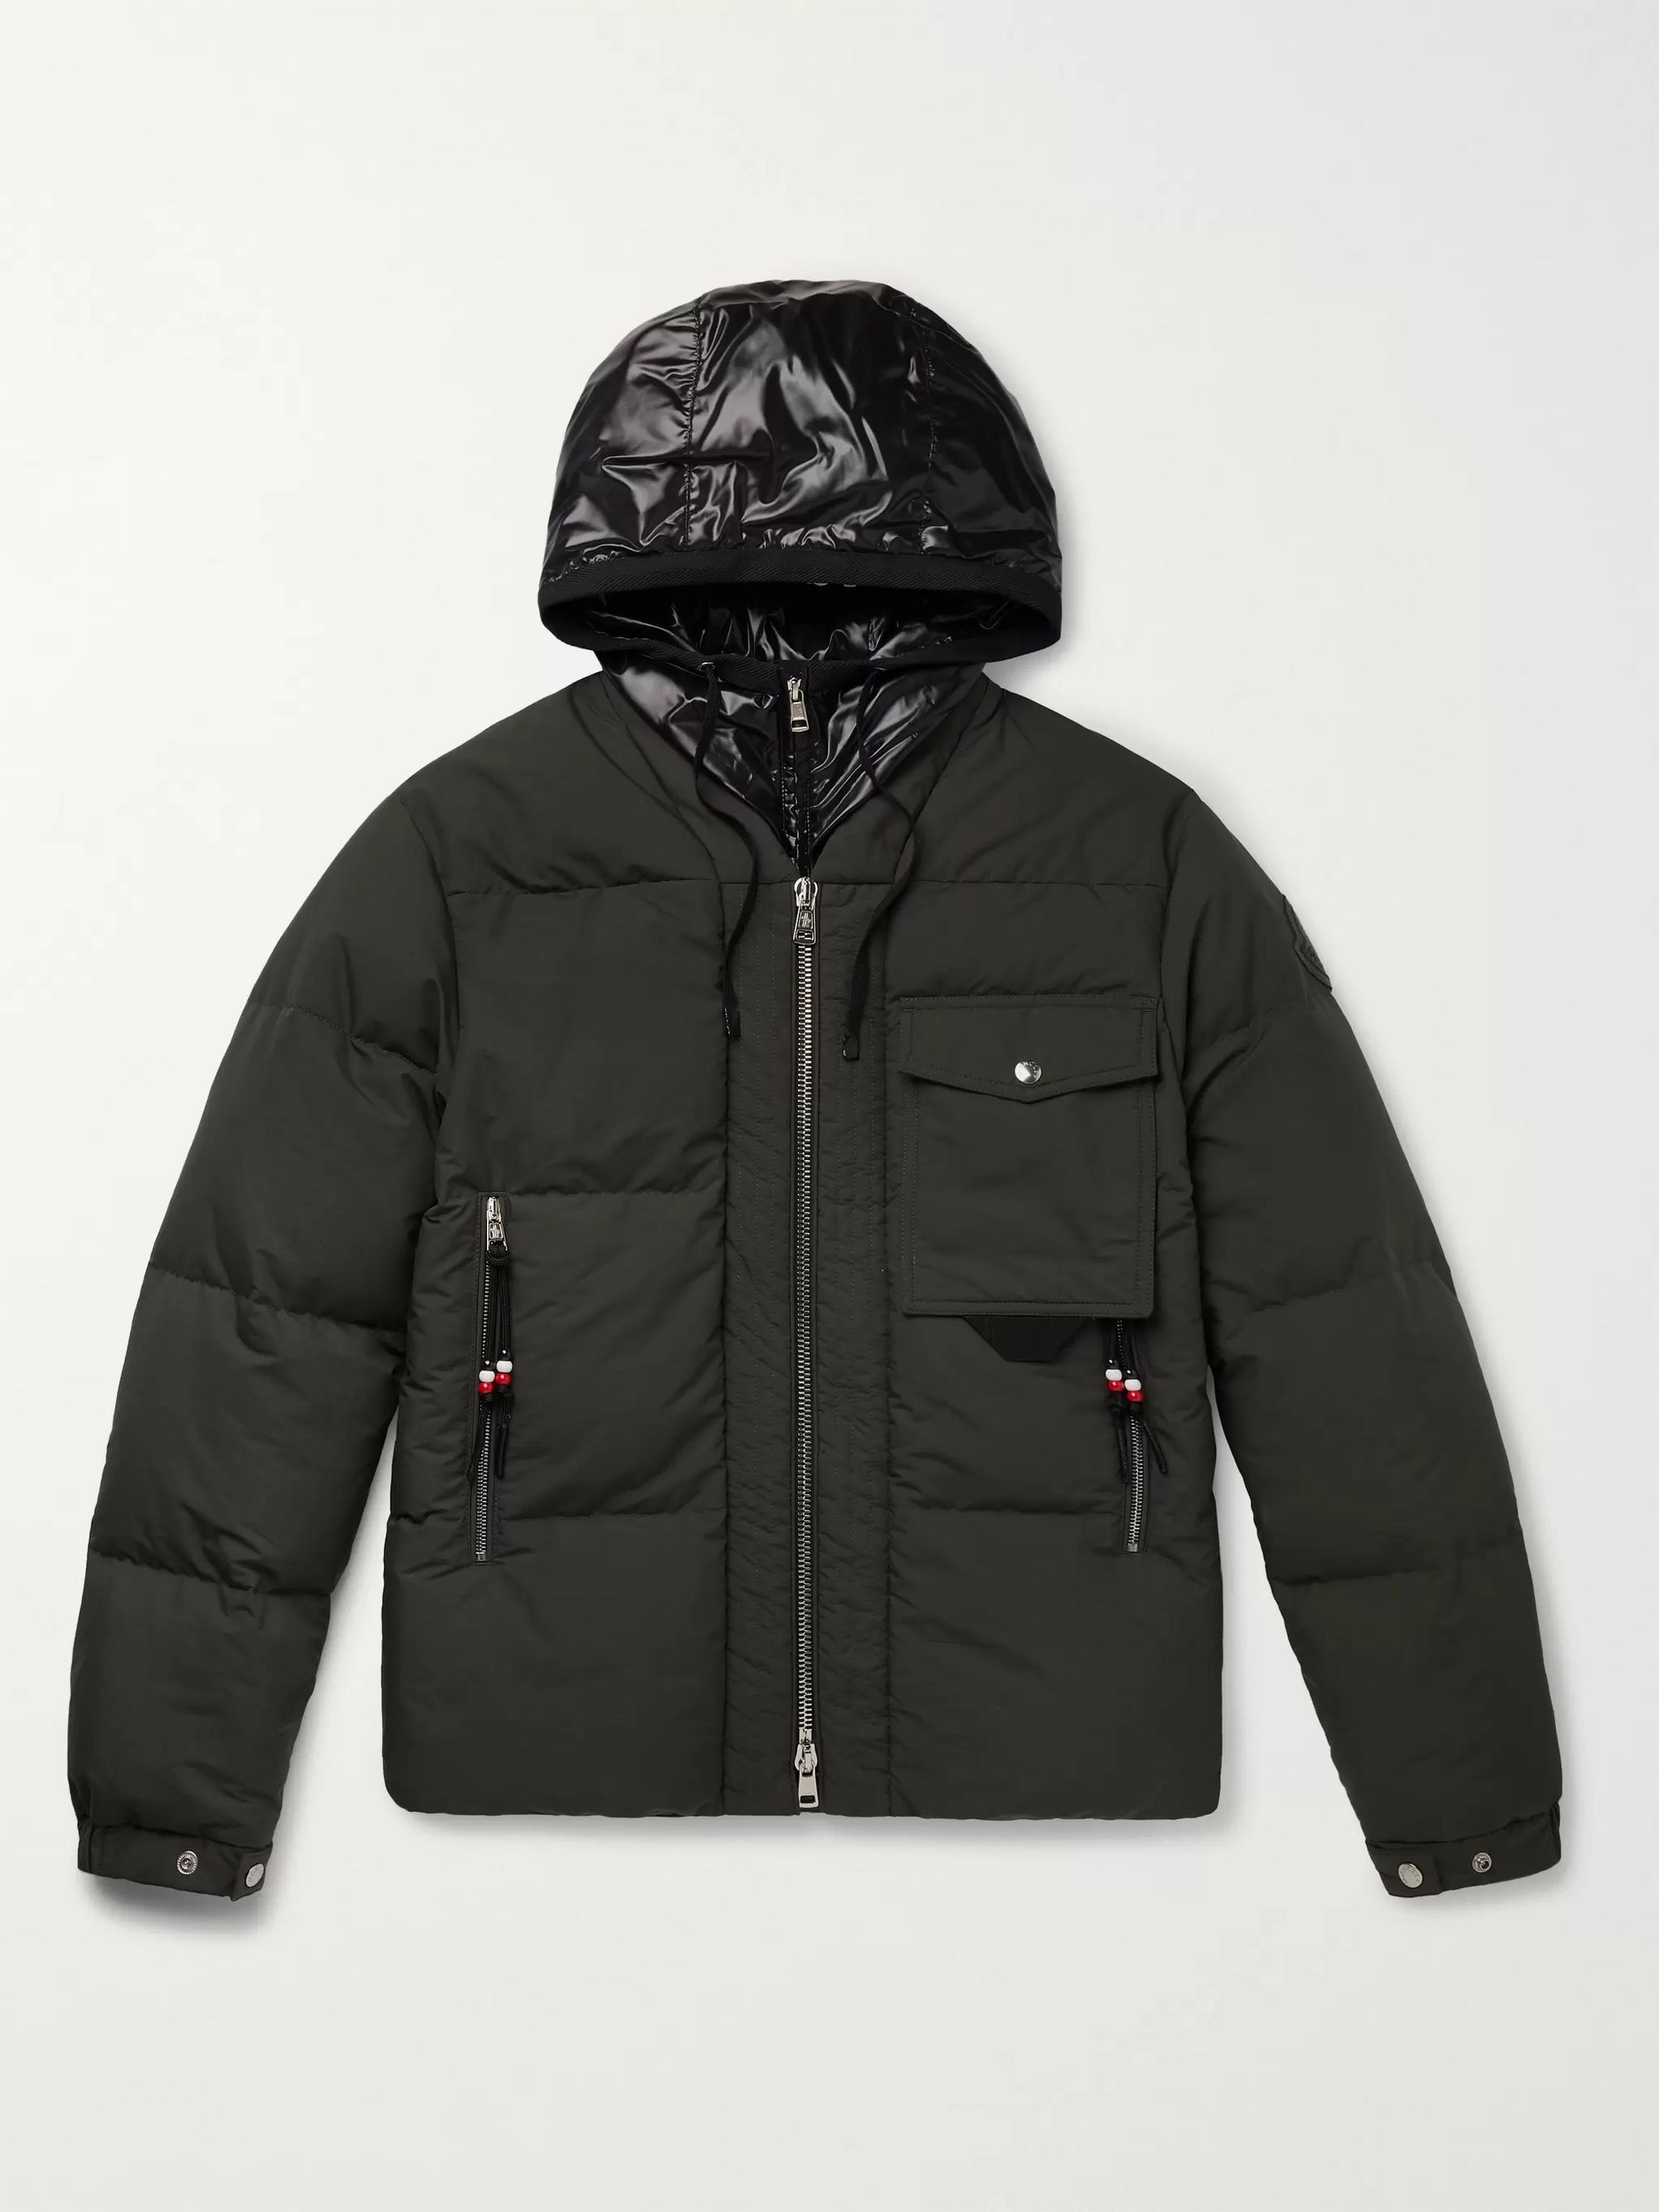 Moncler Genius 2 Moncler 1952 Nylon and Quilted Shell Down Hooded Jacket